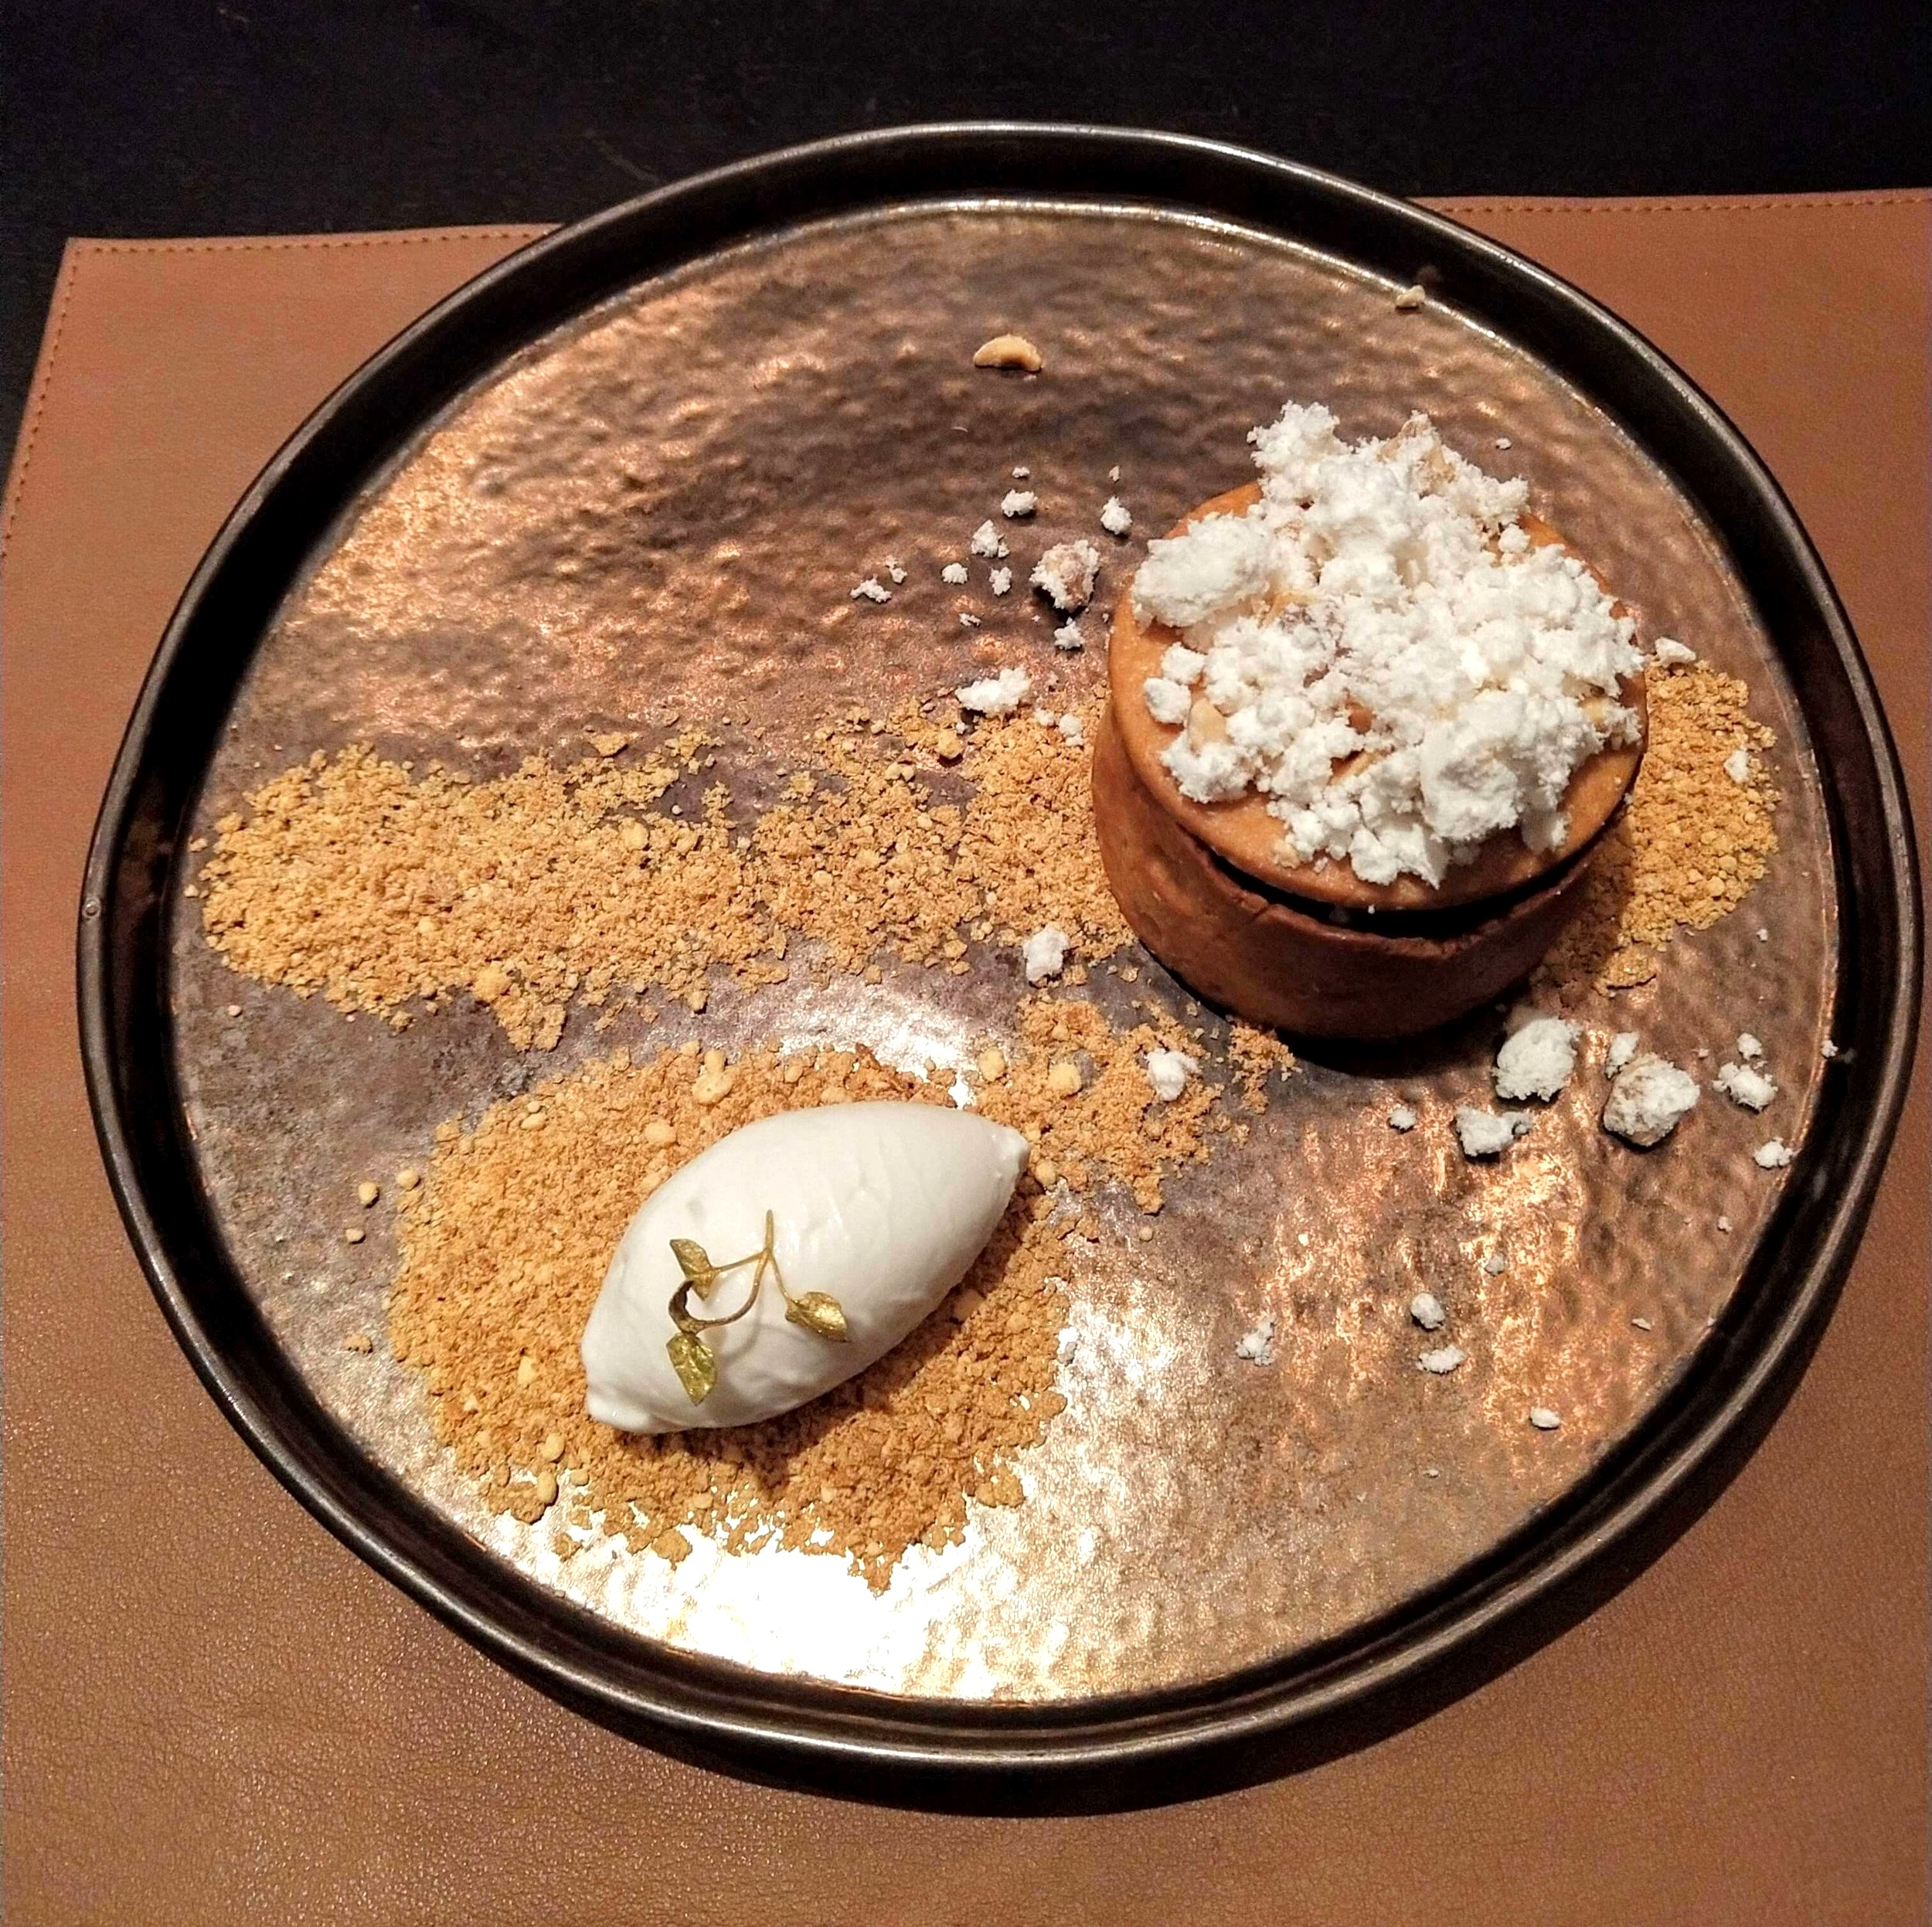 bourbon and pecan with bourbon gel, ice cream sponge POTUS restaurant vauxhall London